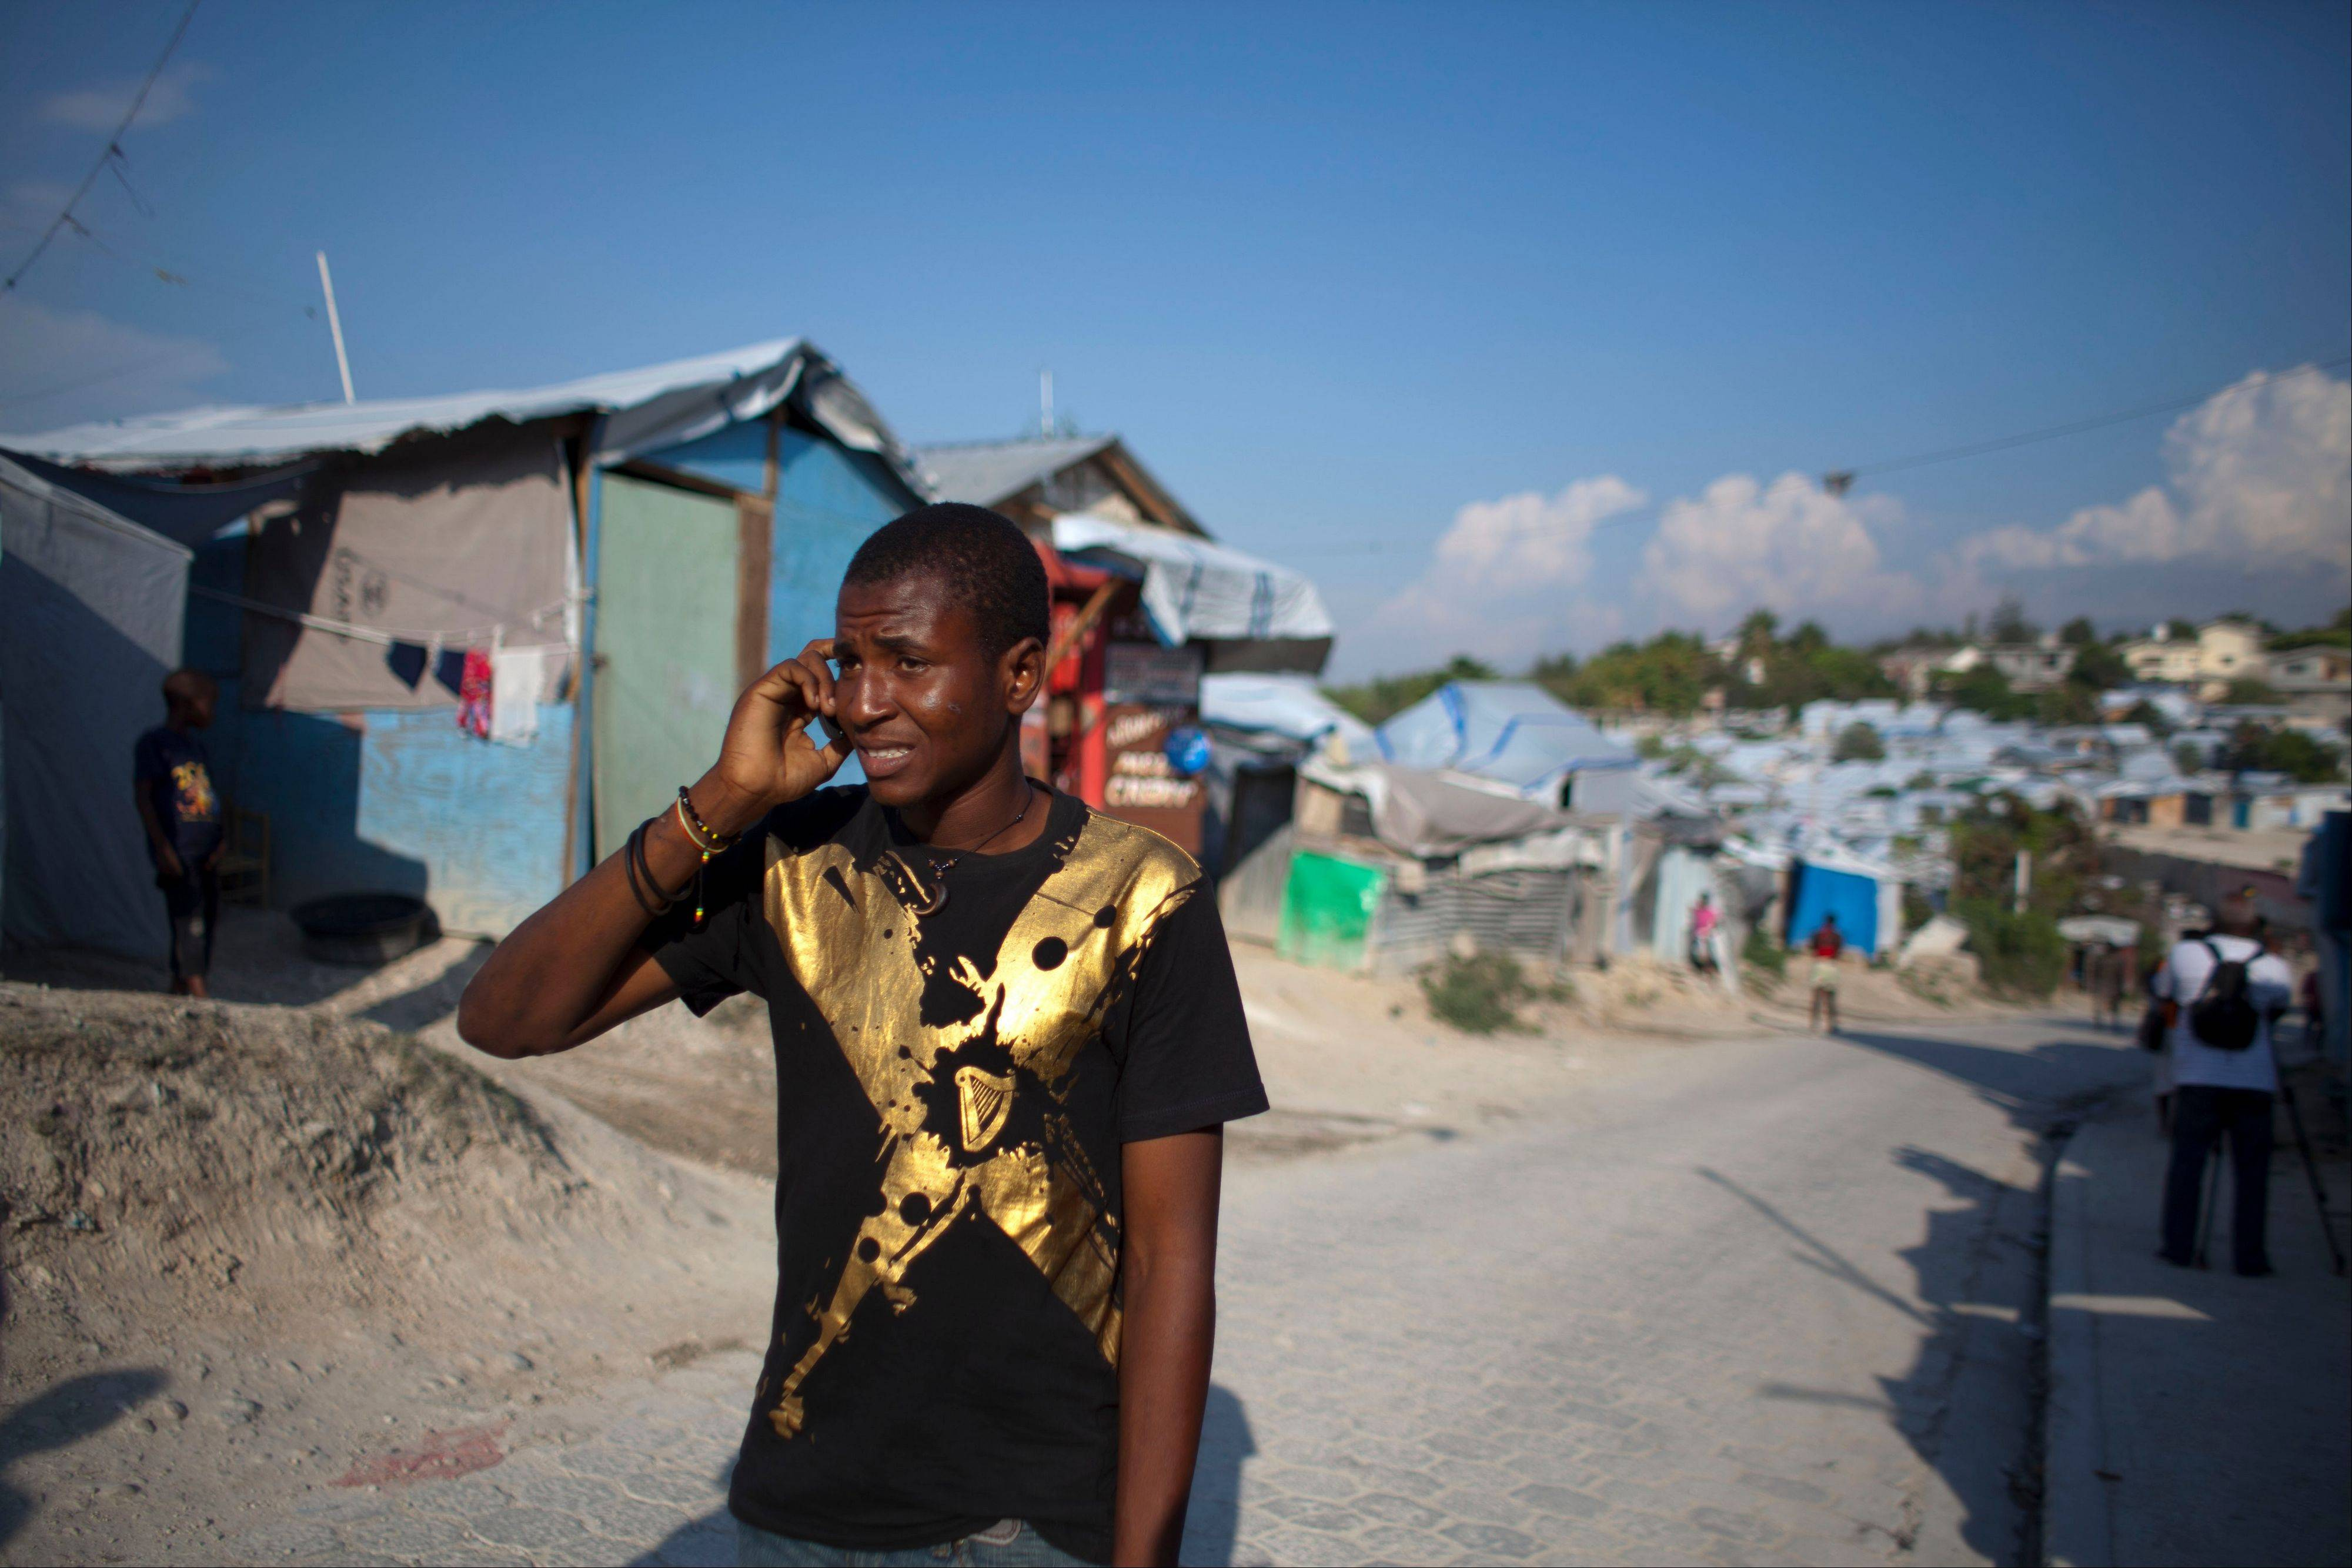 Darlin Lexima walks through Camp Acra in Port-au-Prince, Haiti. Lexima, 21, who lives in the camp for people displaced by the 2010 earthquake, was arrested by police early April 15 when he was walking home from a disco club as police were responding to residents protesting an earlier raid by an unidentified band of motorcyclist who set fire to their homes. In the few weeks since the mid-April confrontation, it has become an instant symbol for what many say is the growing use of threats and sometimes outright violence to clear out sprawling displaced person camps, where some 320,000 people still live.